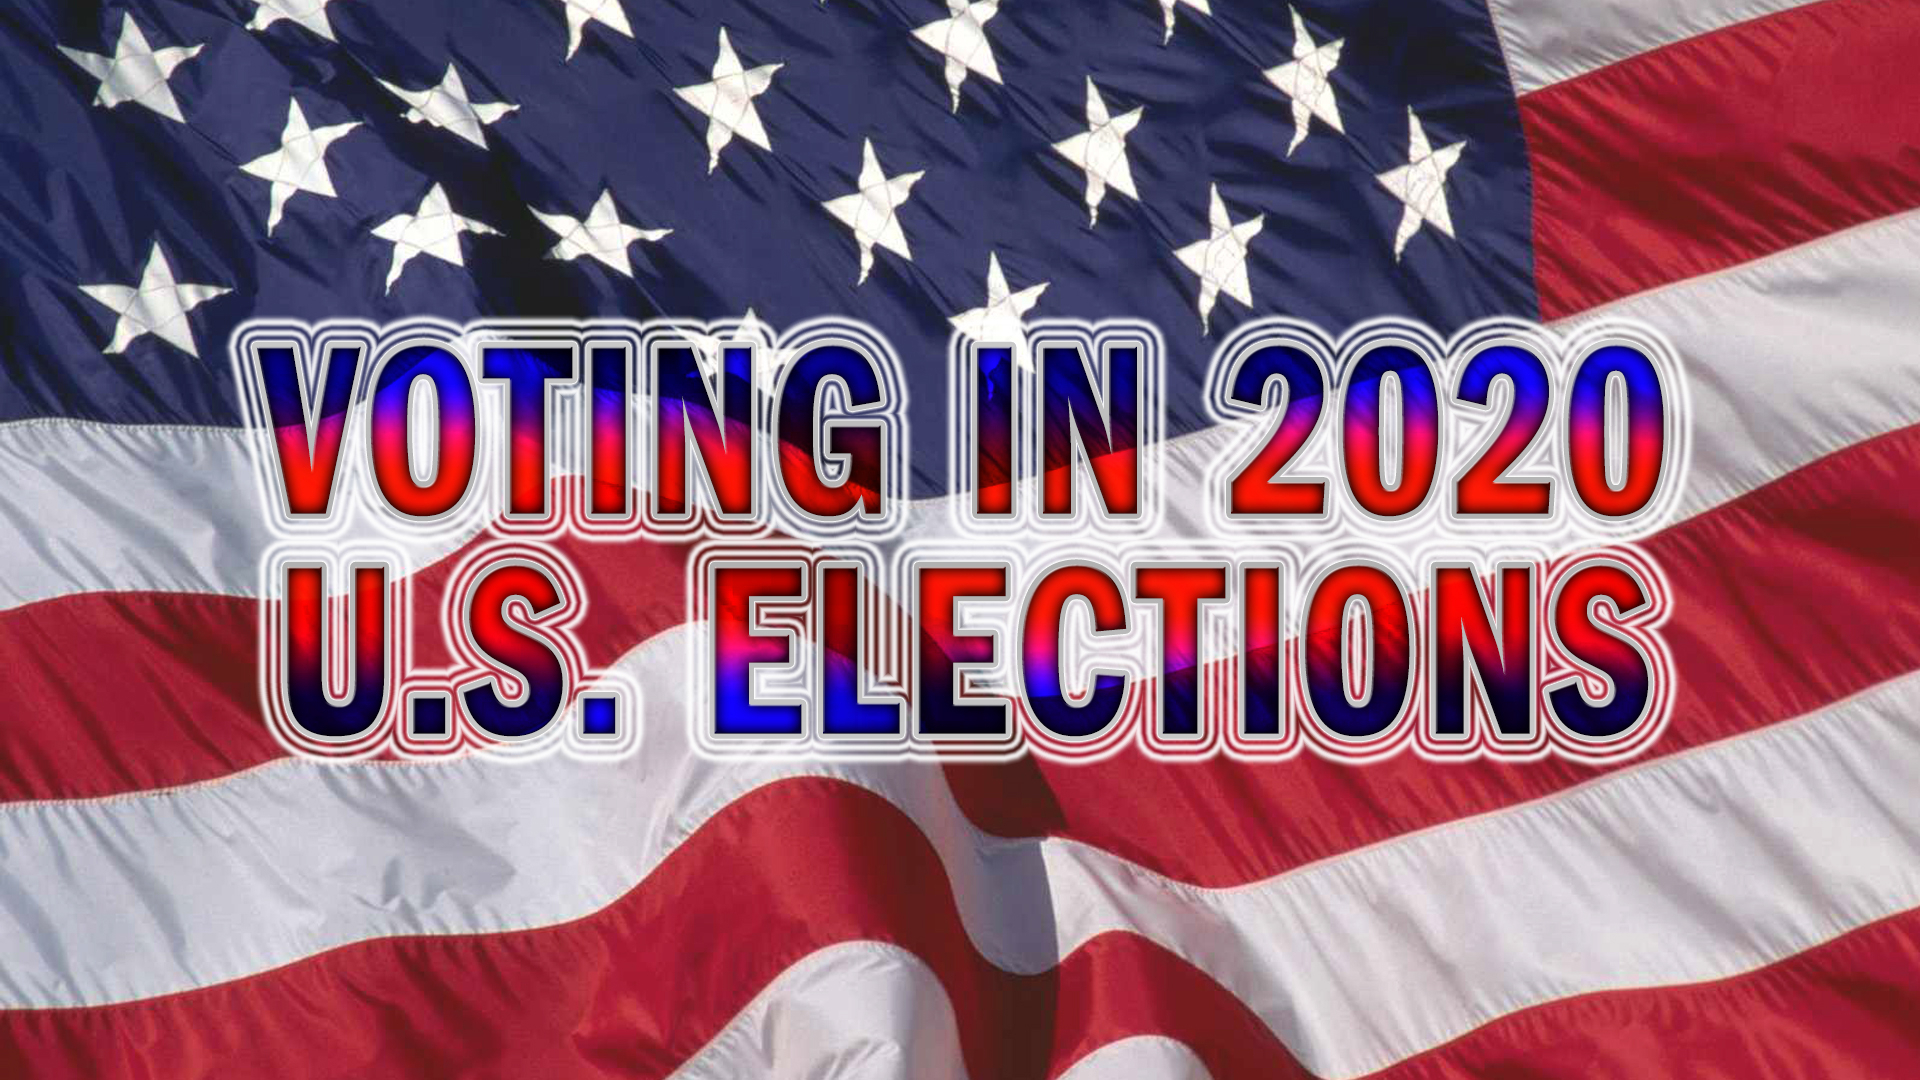 Voting In 2020 U.s. Elections | U.s. Embassy In Austria